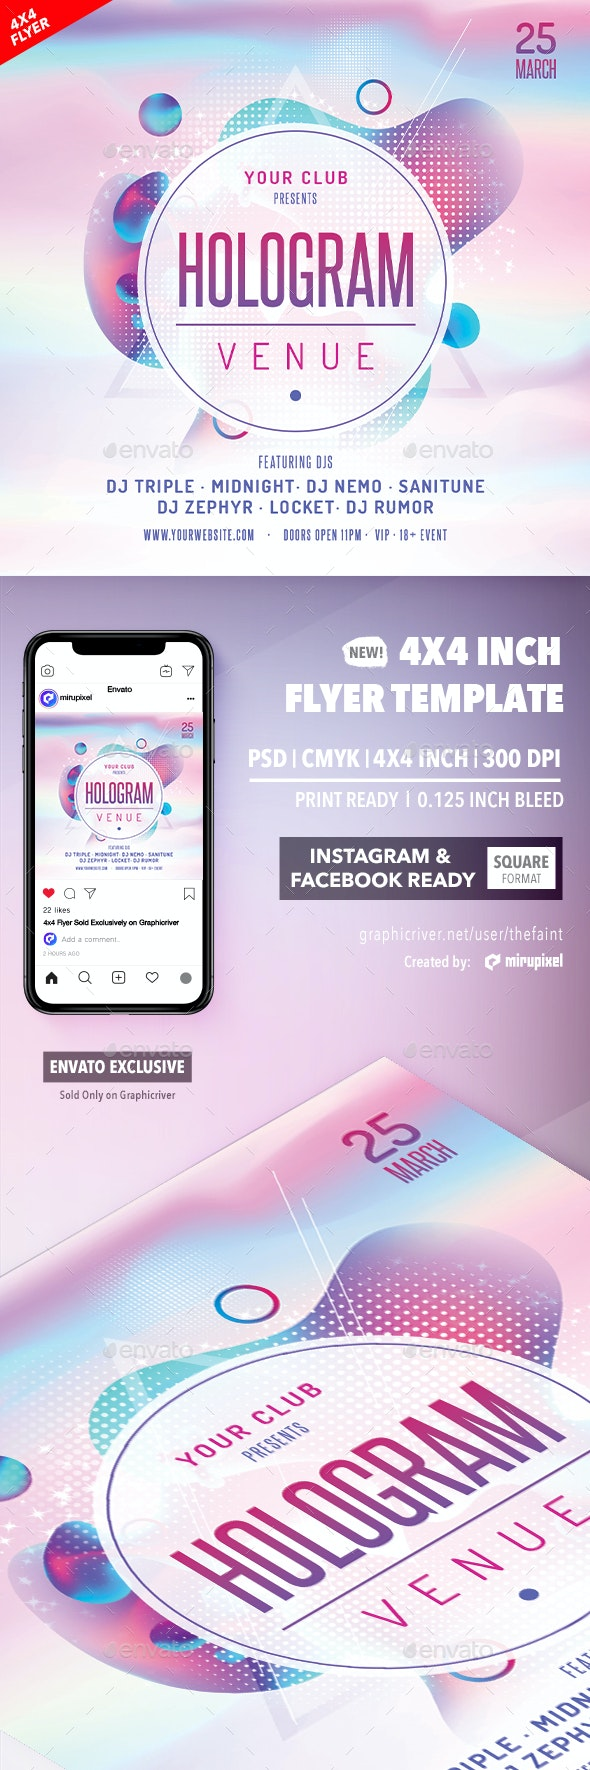 Hologram Venue 4x4 Inch Flyer Template - Clubs & Parties Events